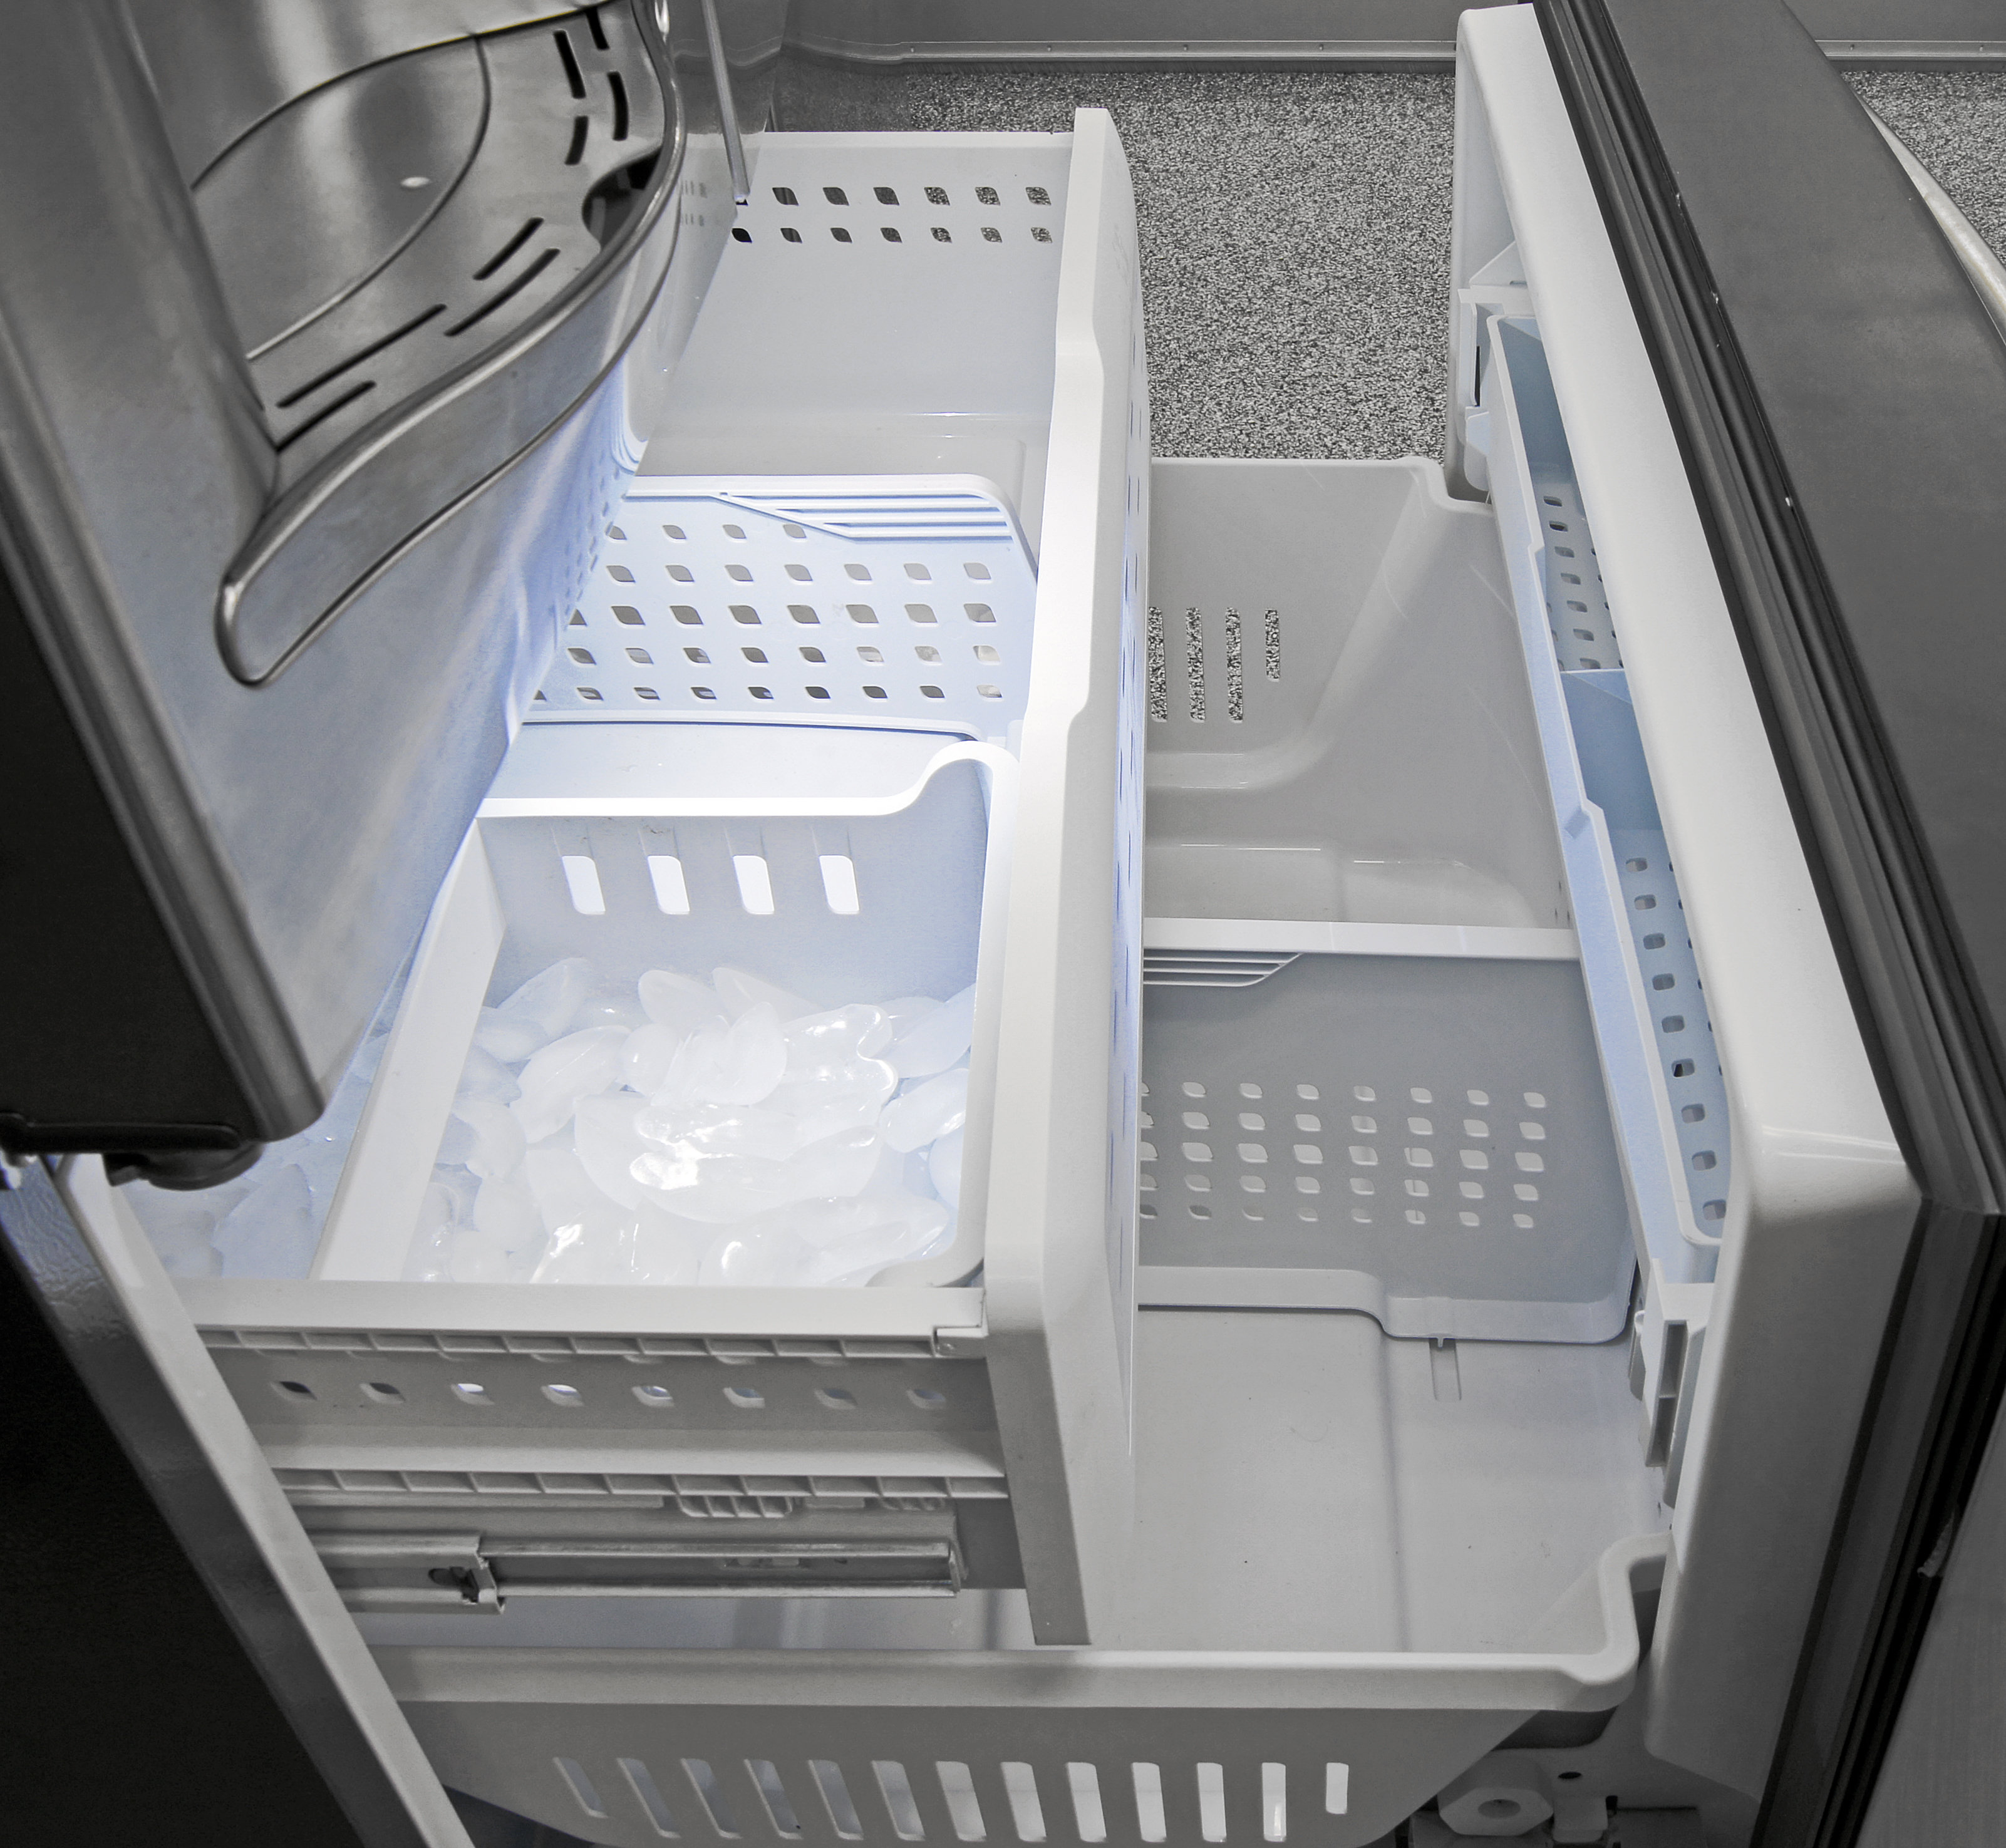 The GE Profile PFE28RSHSS's spacious pull-out freezer also comes with an unusually designed ice bucket.